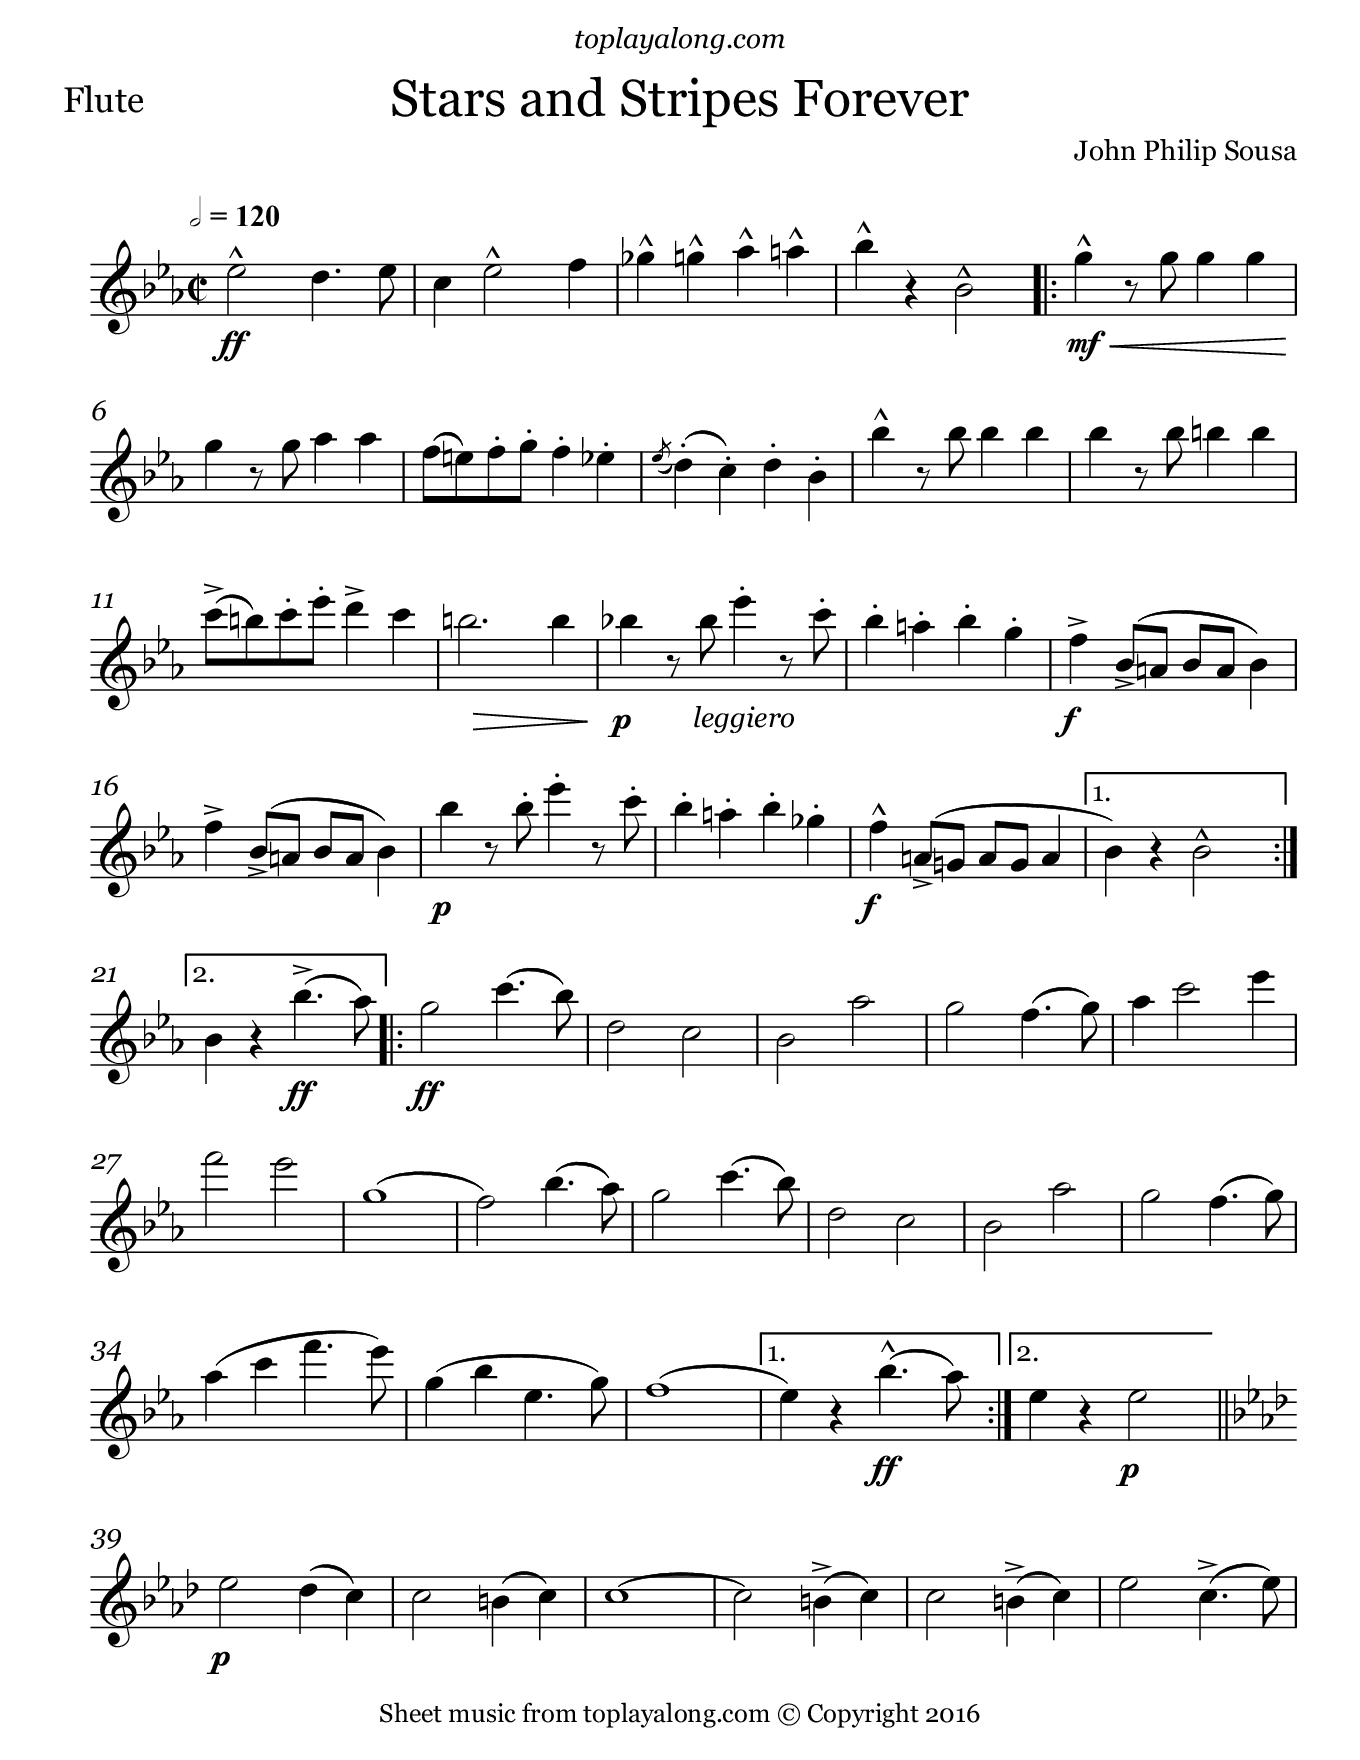 Stars and Stripes Forever by Sousa. Sheet music for Flute, page 1.